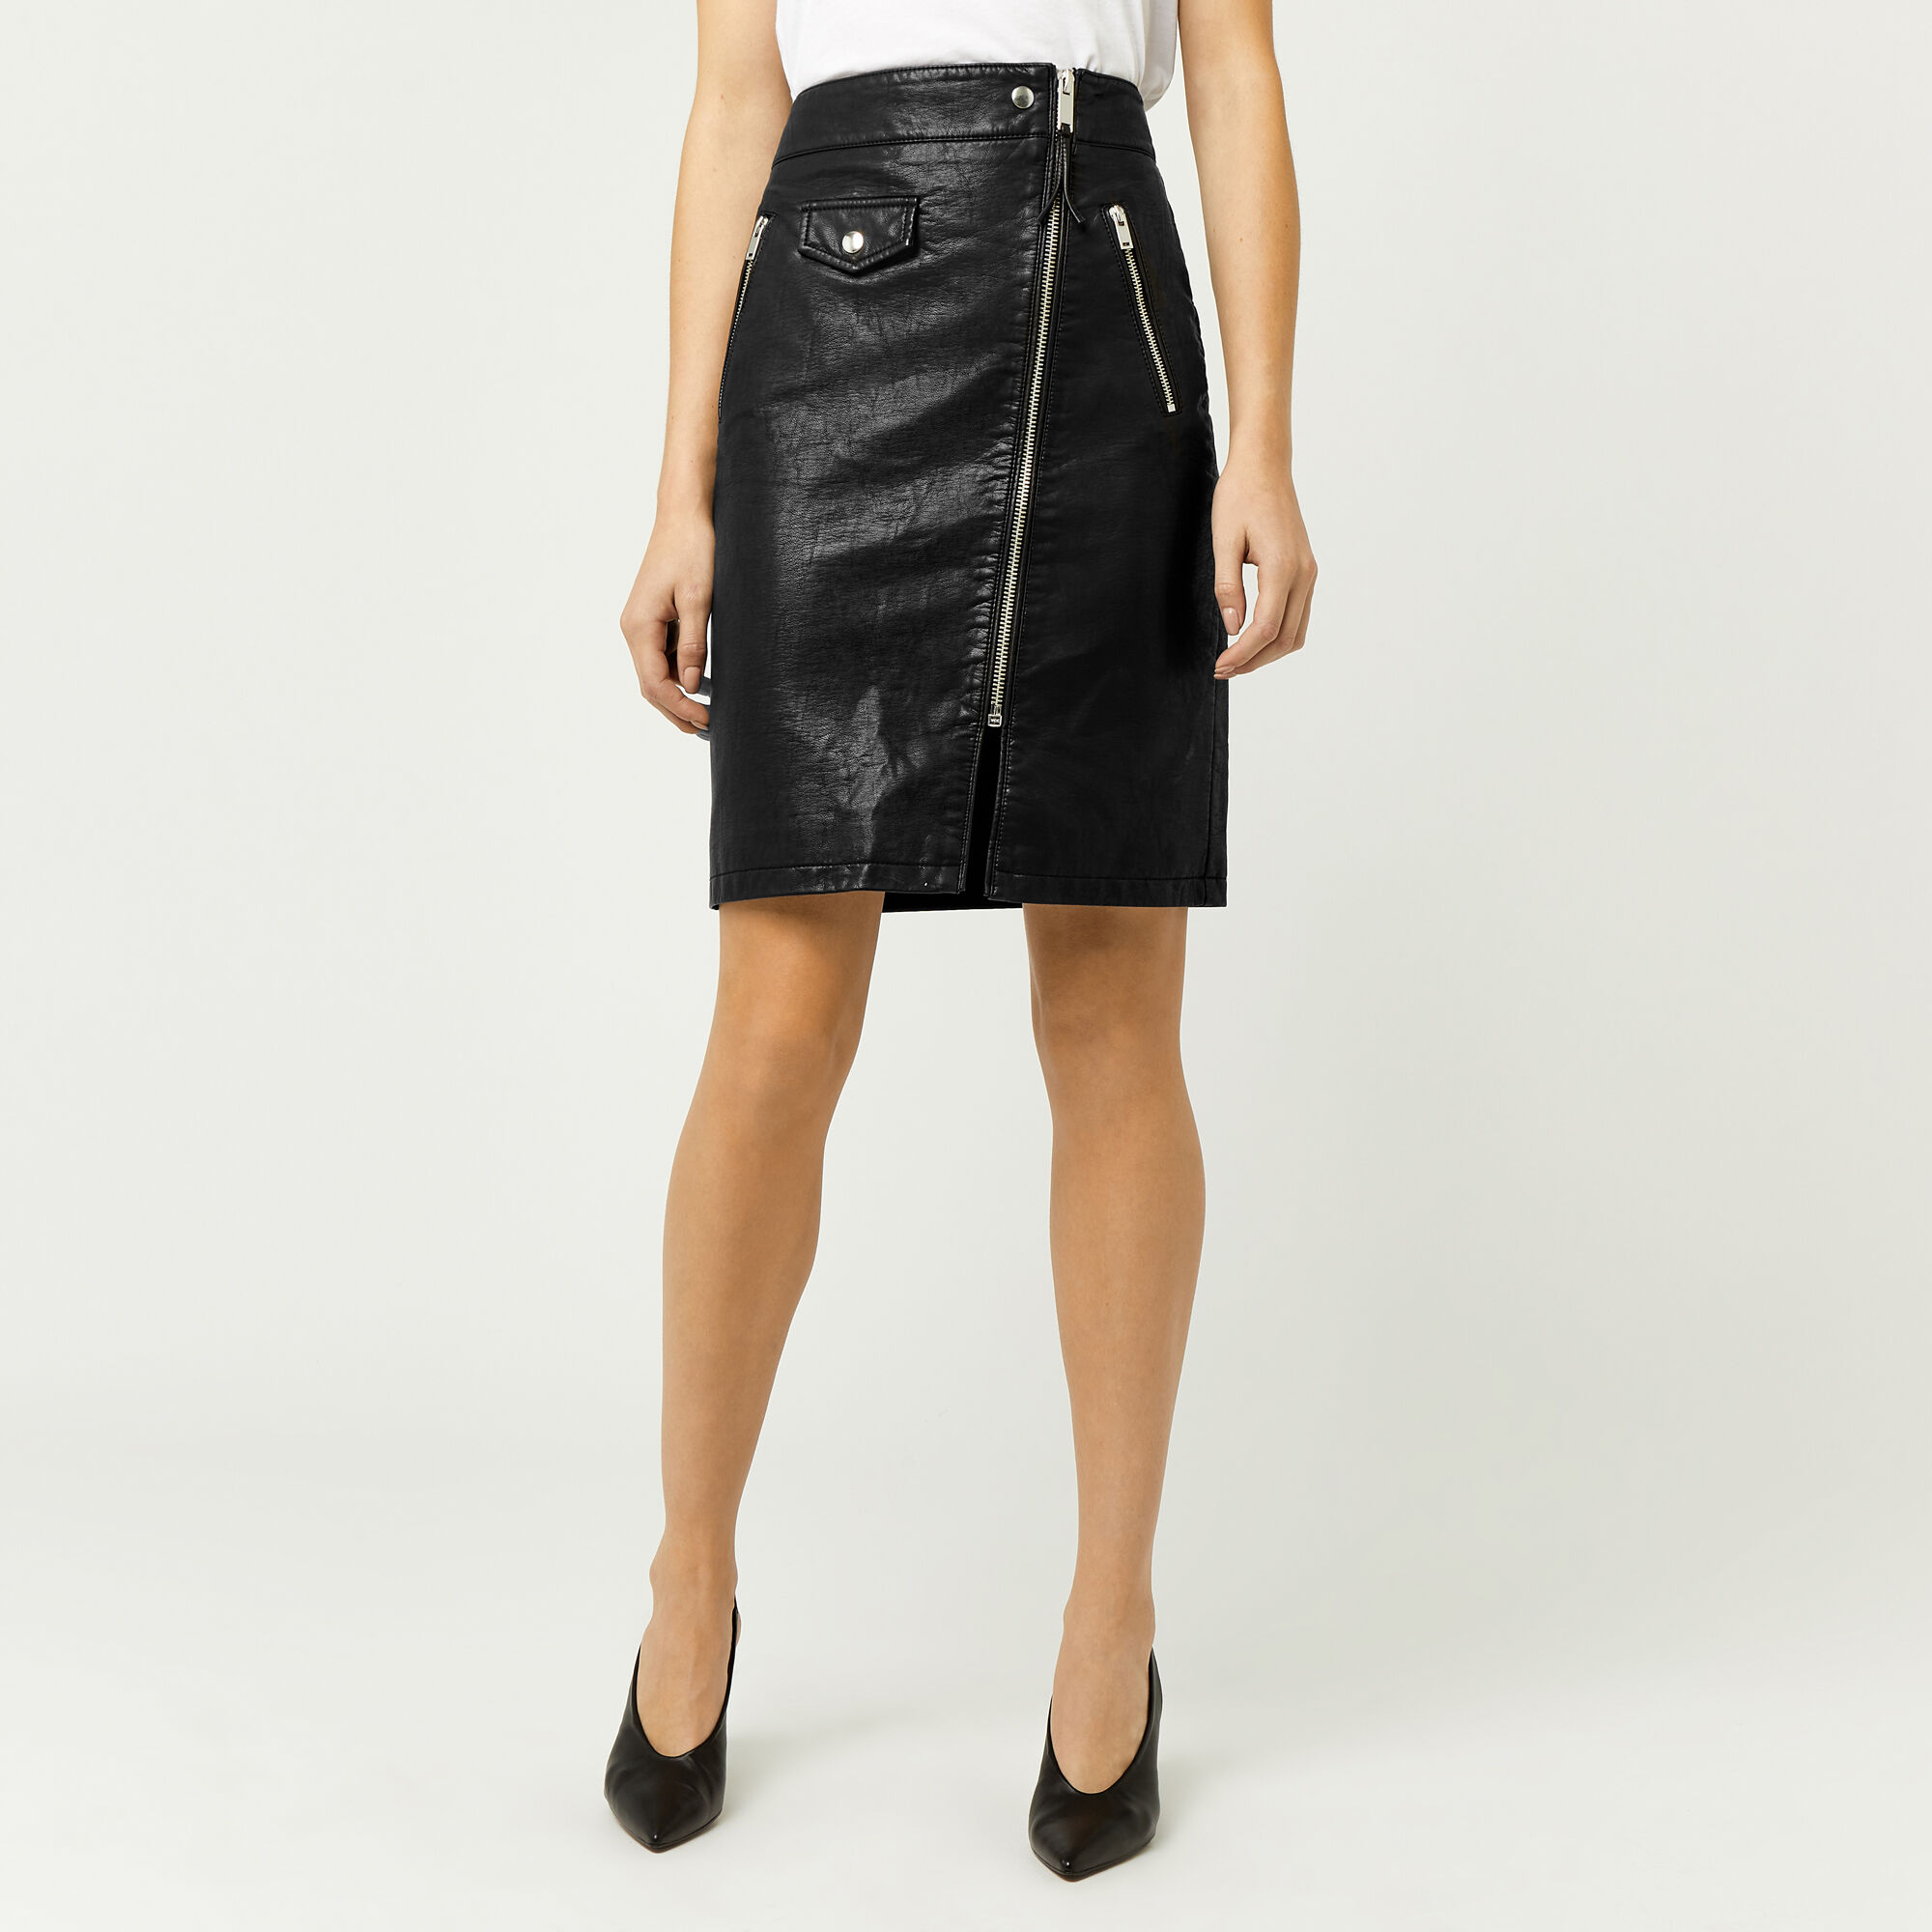 Warehouse, Biker Zip Skirt Black 1